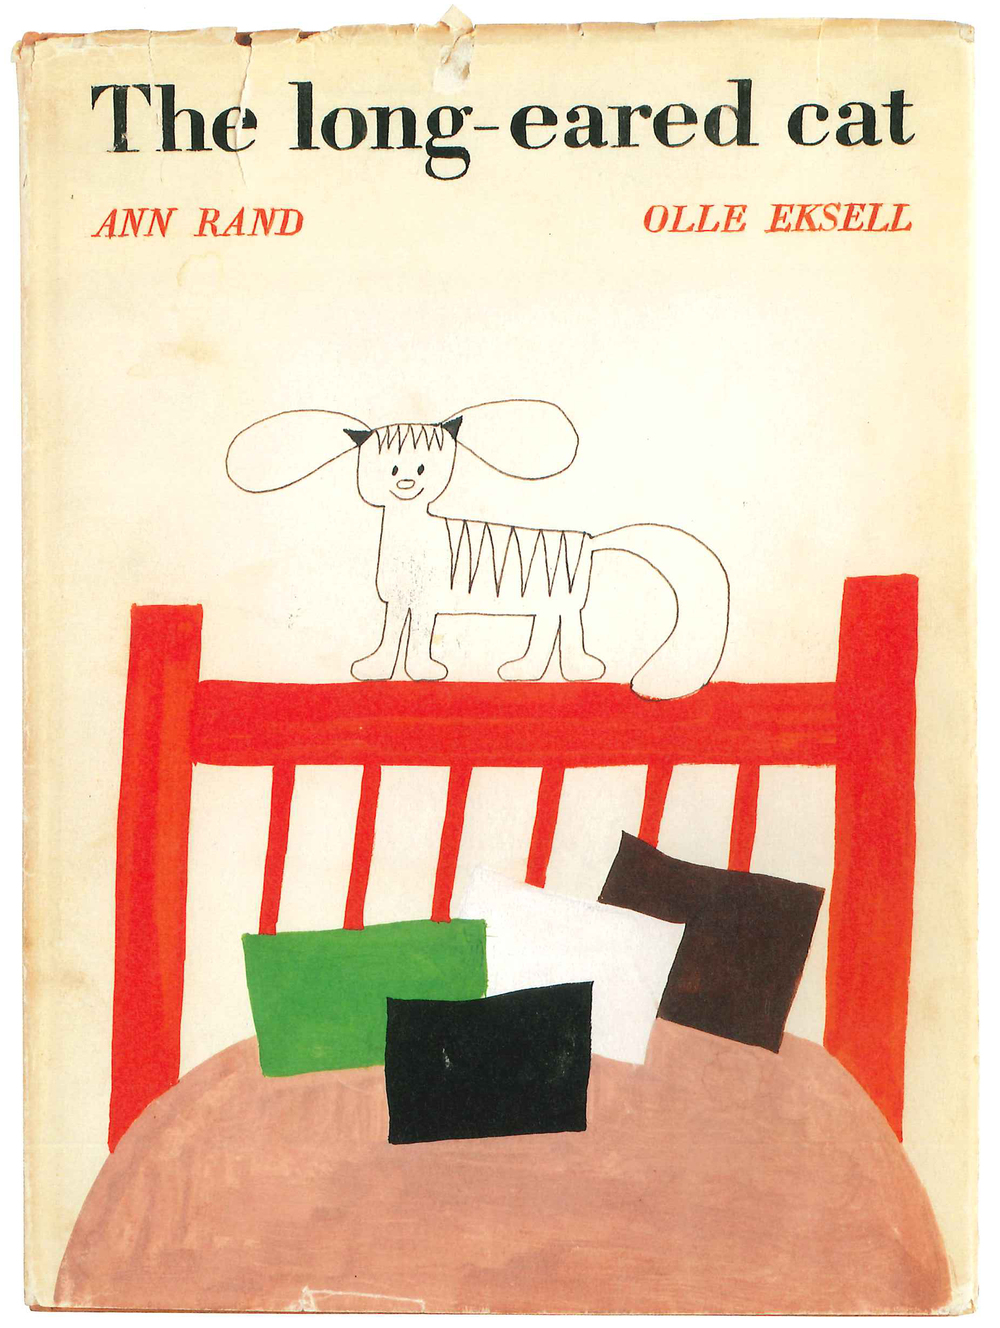 The long-eared cat by Ann Rand and olle Eksell